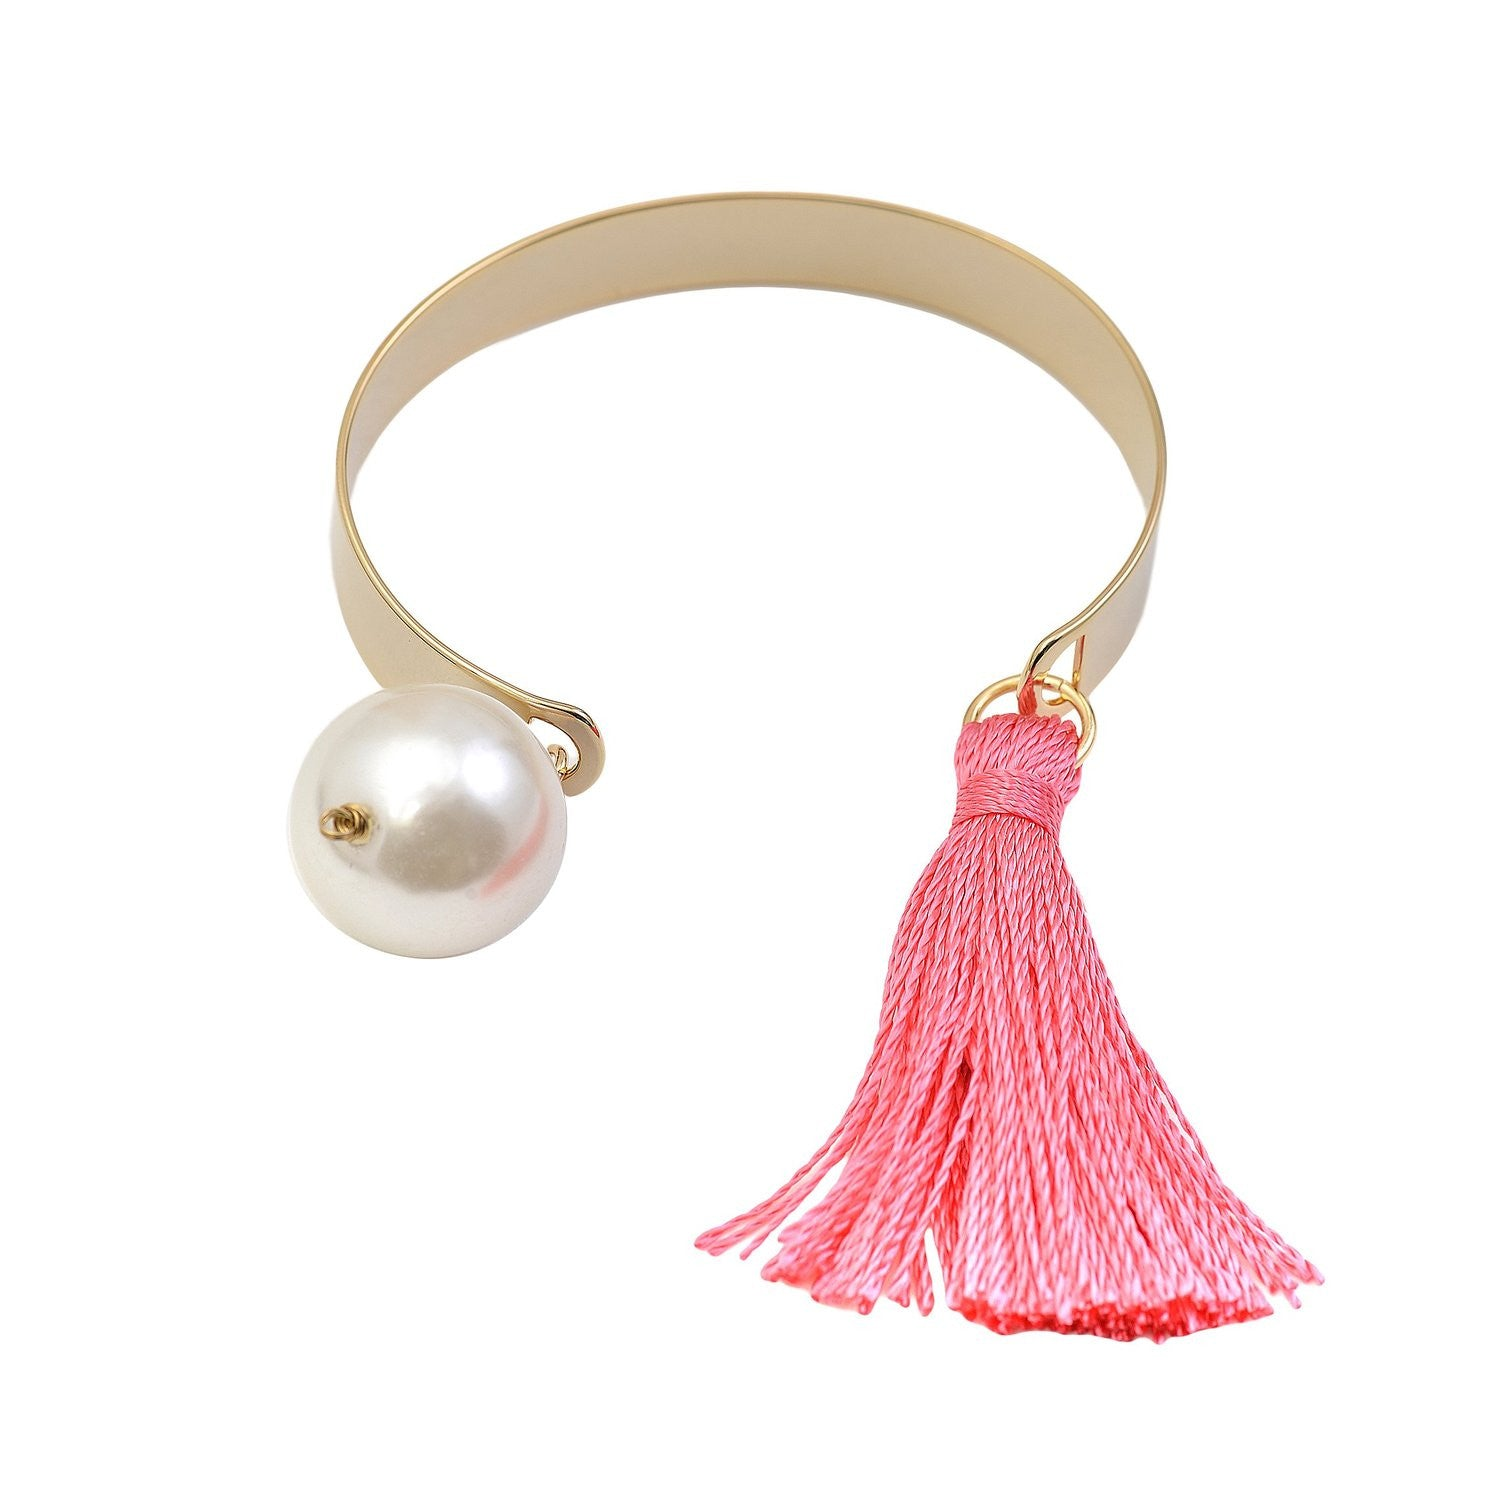 ... Colorful Tassel And Faux Pearl End Band Cuff Bracelet   Spinningdaisy  ...